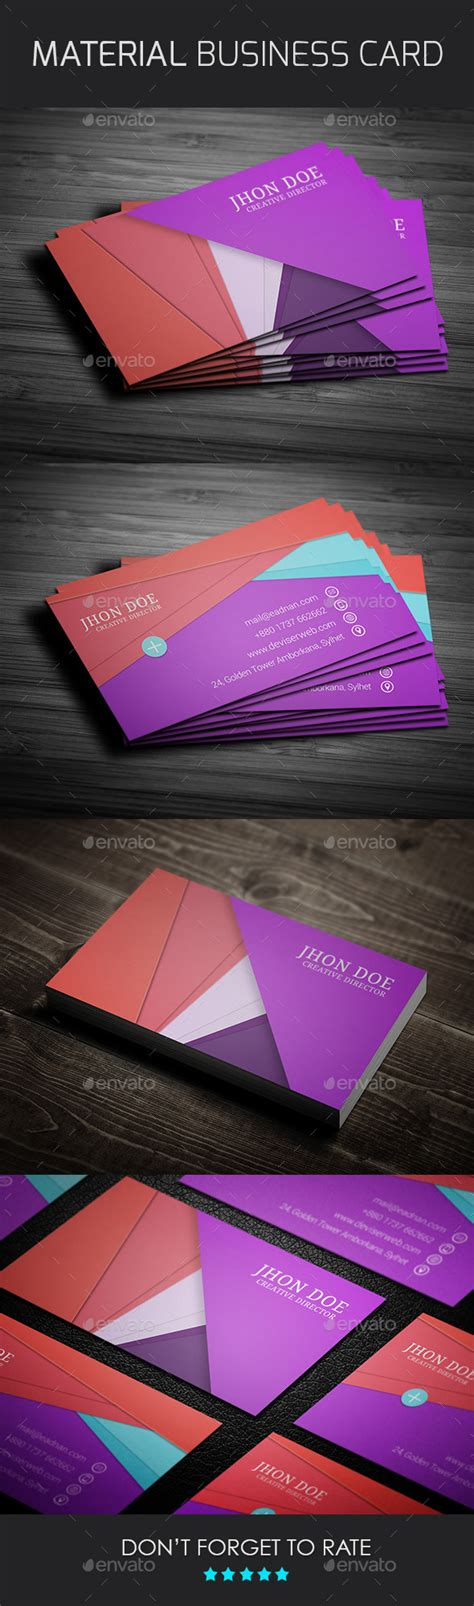 material design business card template free material design business card template by rtralrayhan